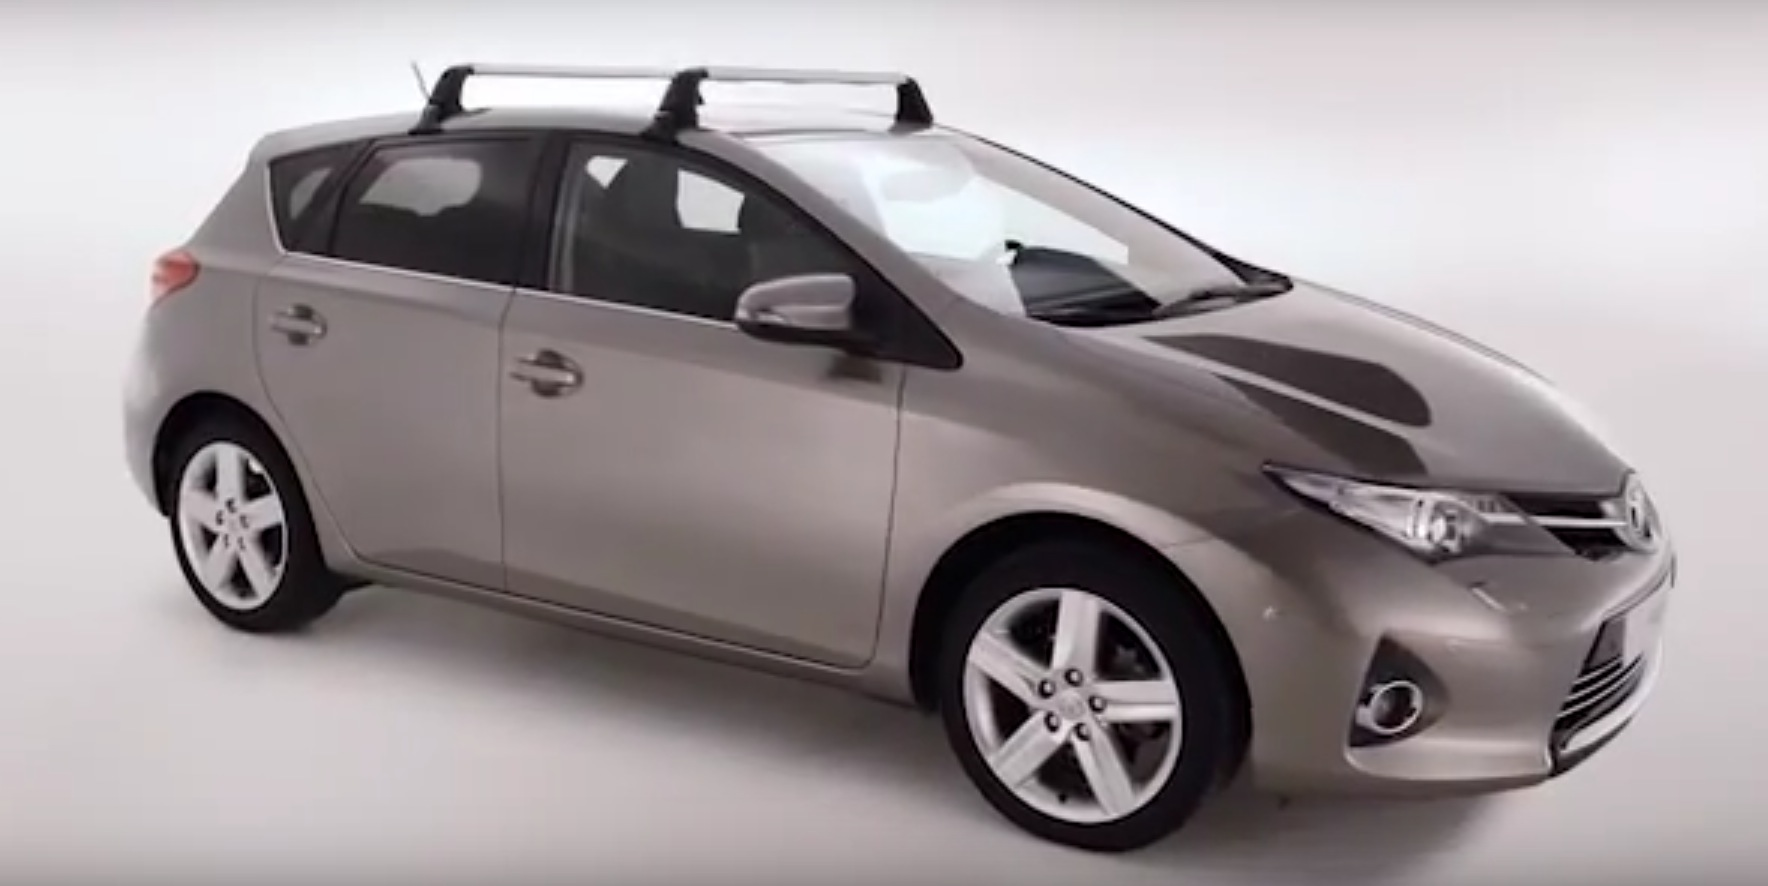 Toyota Explains How To Install A Roof Rack Or Cross Bars